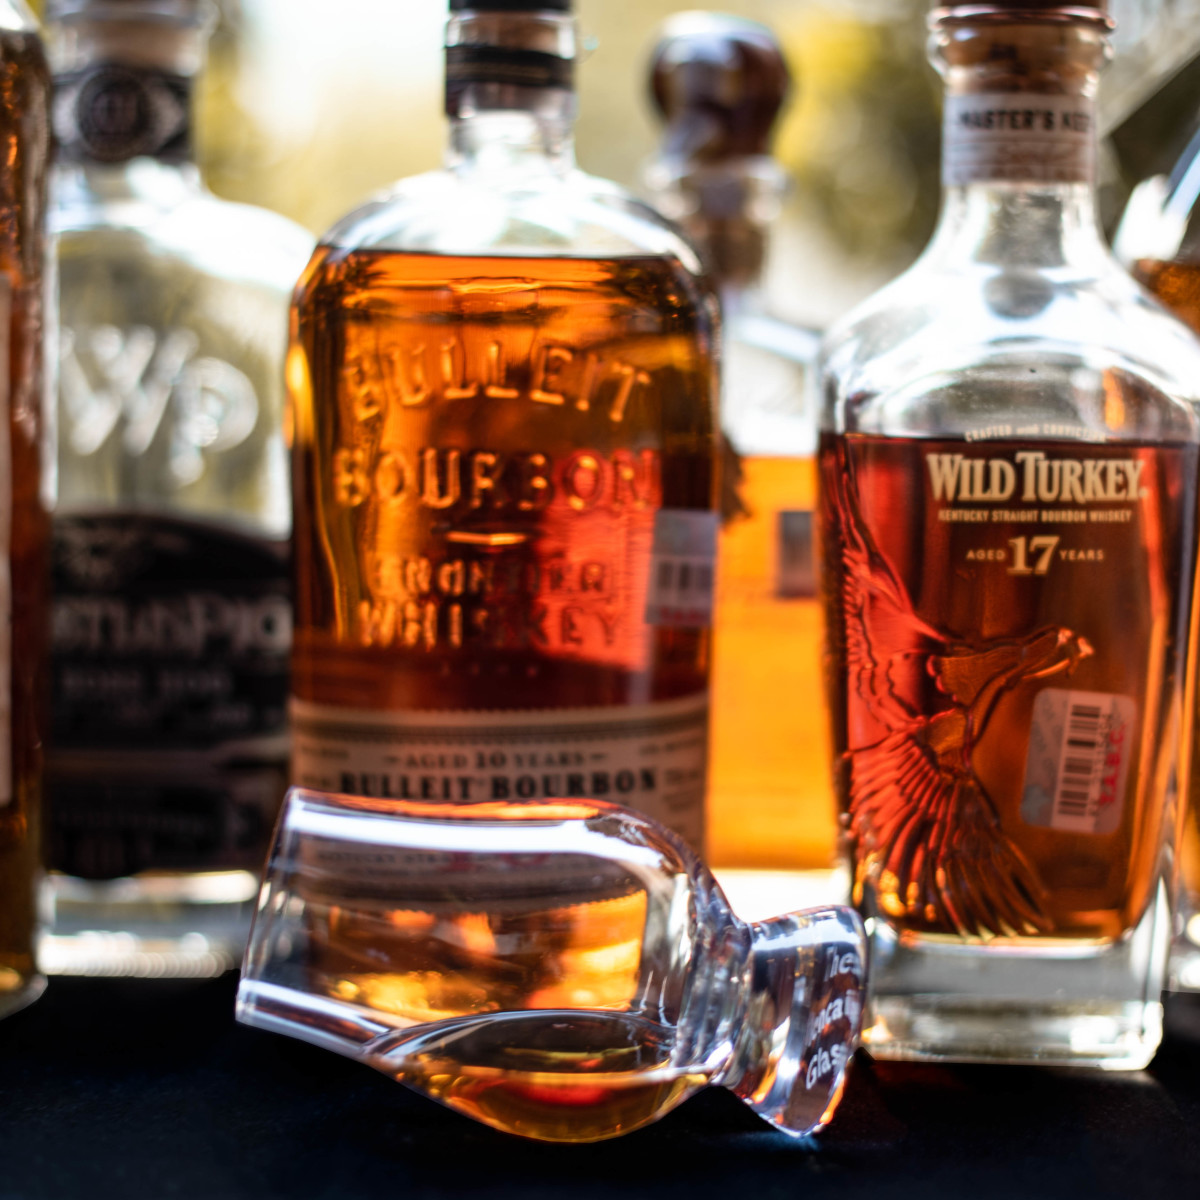 Bayou & Bottle bourbon dinner